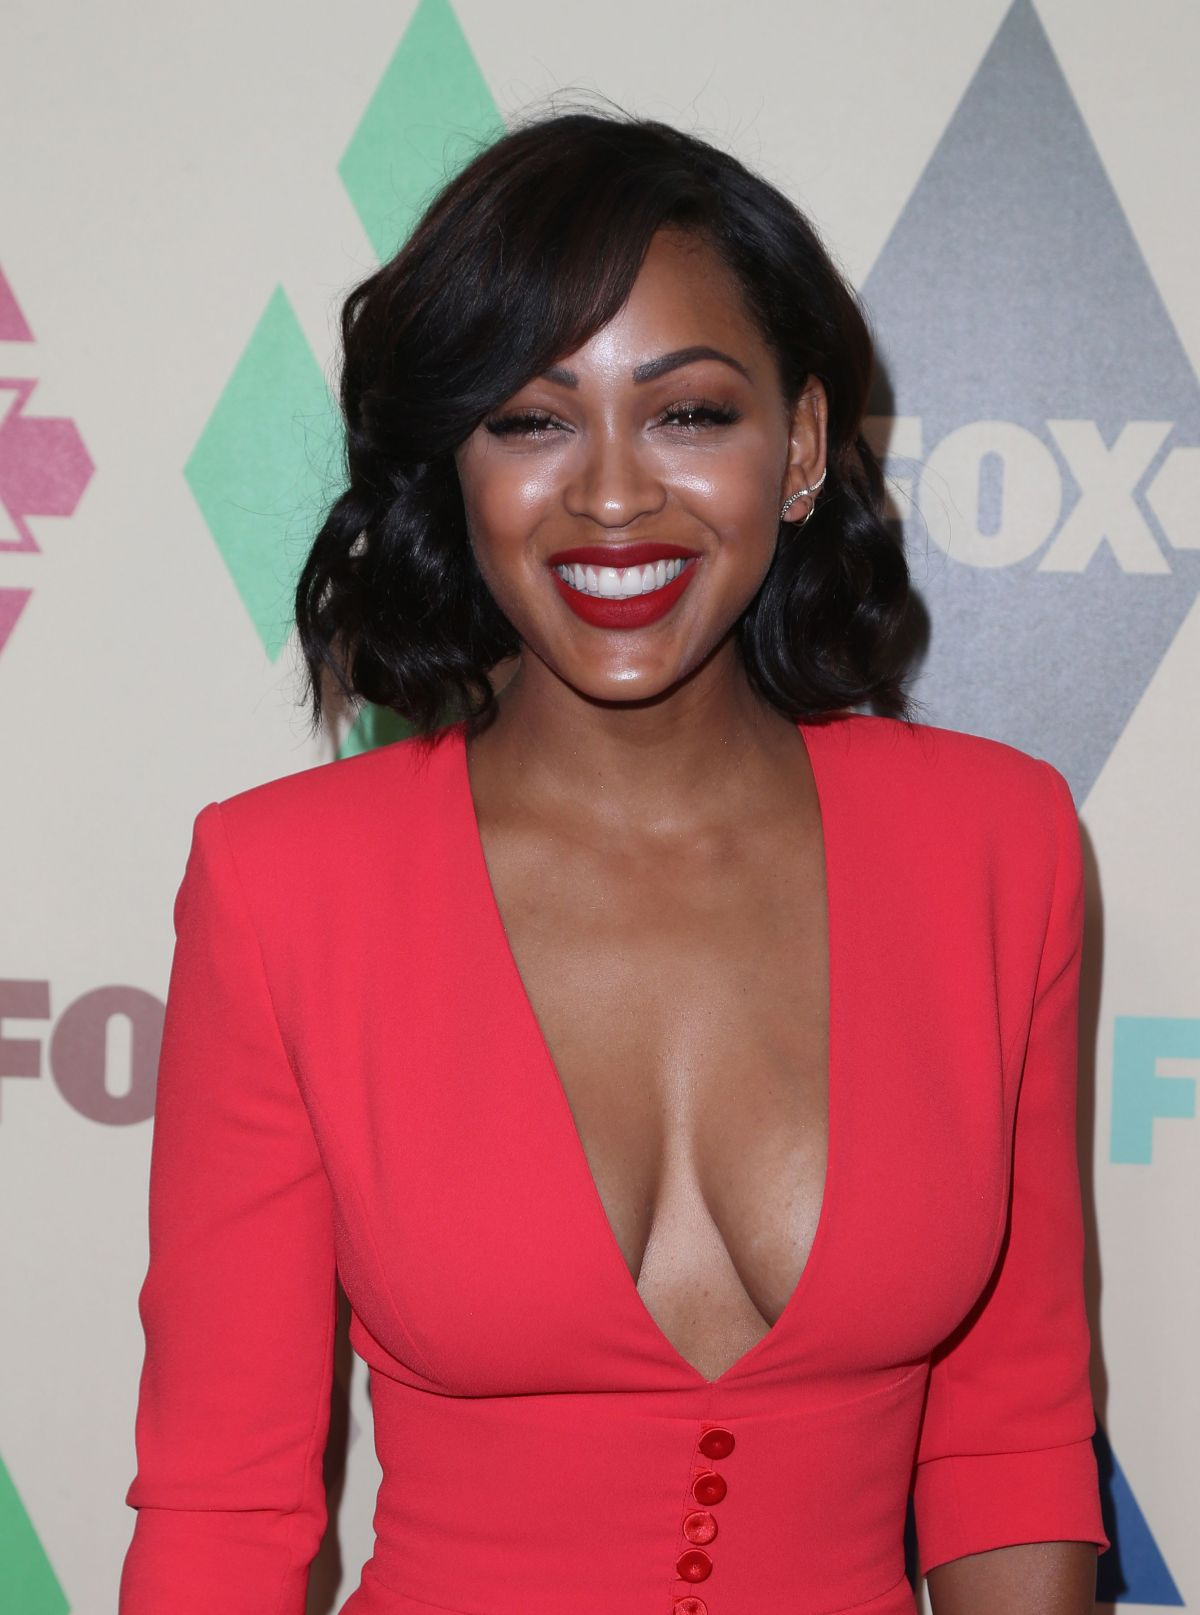 MEAGAN GOOD at Fox/FX Summer 2015 TCA Party in West ...